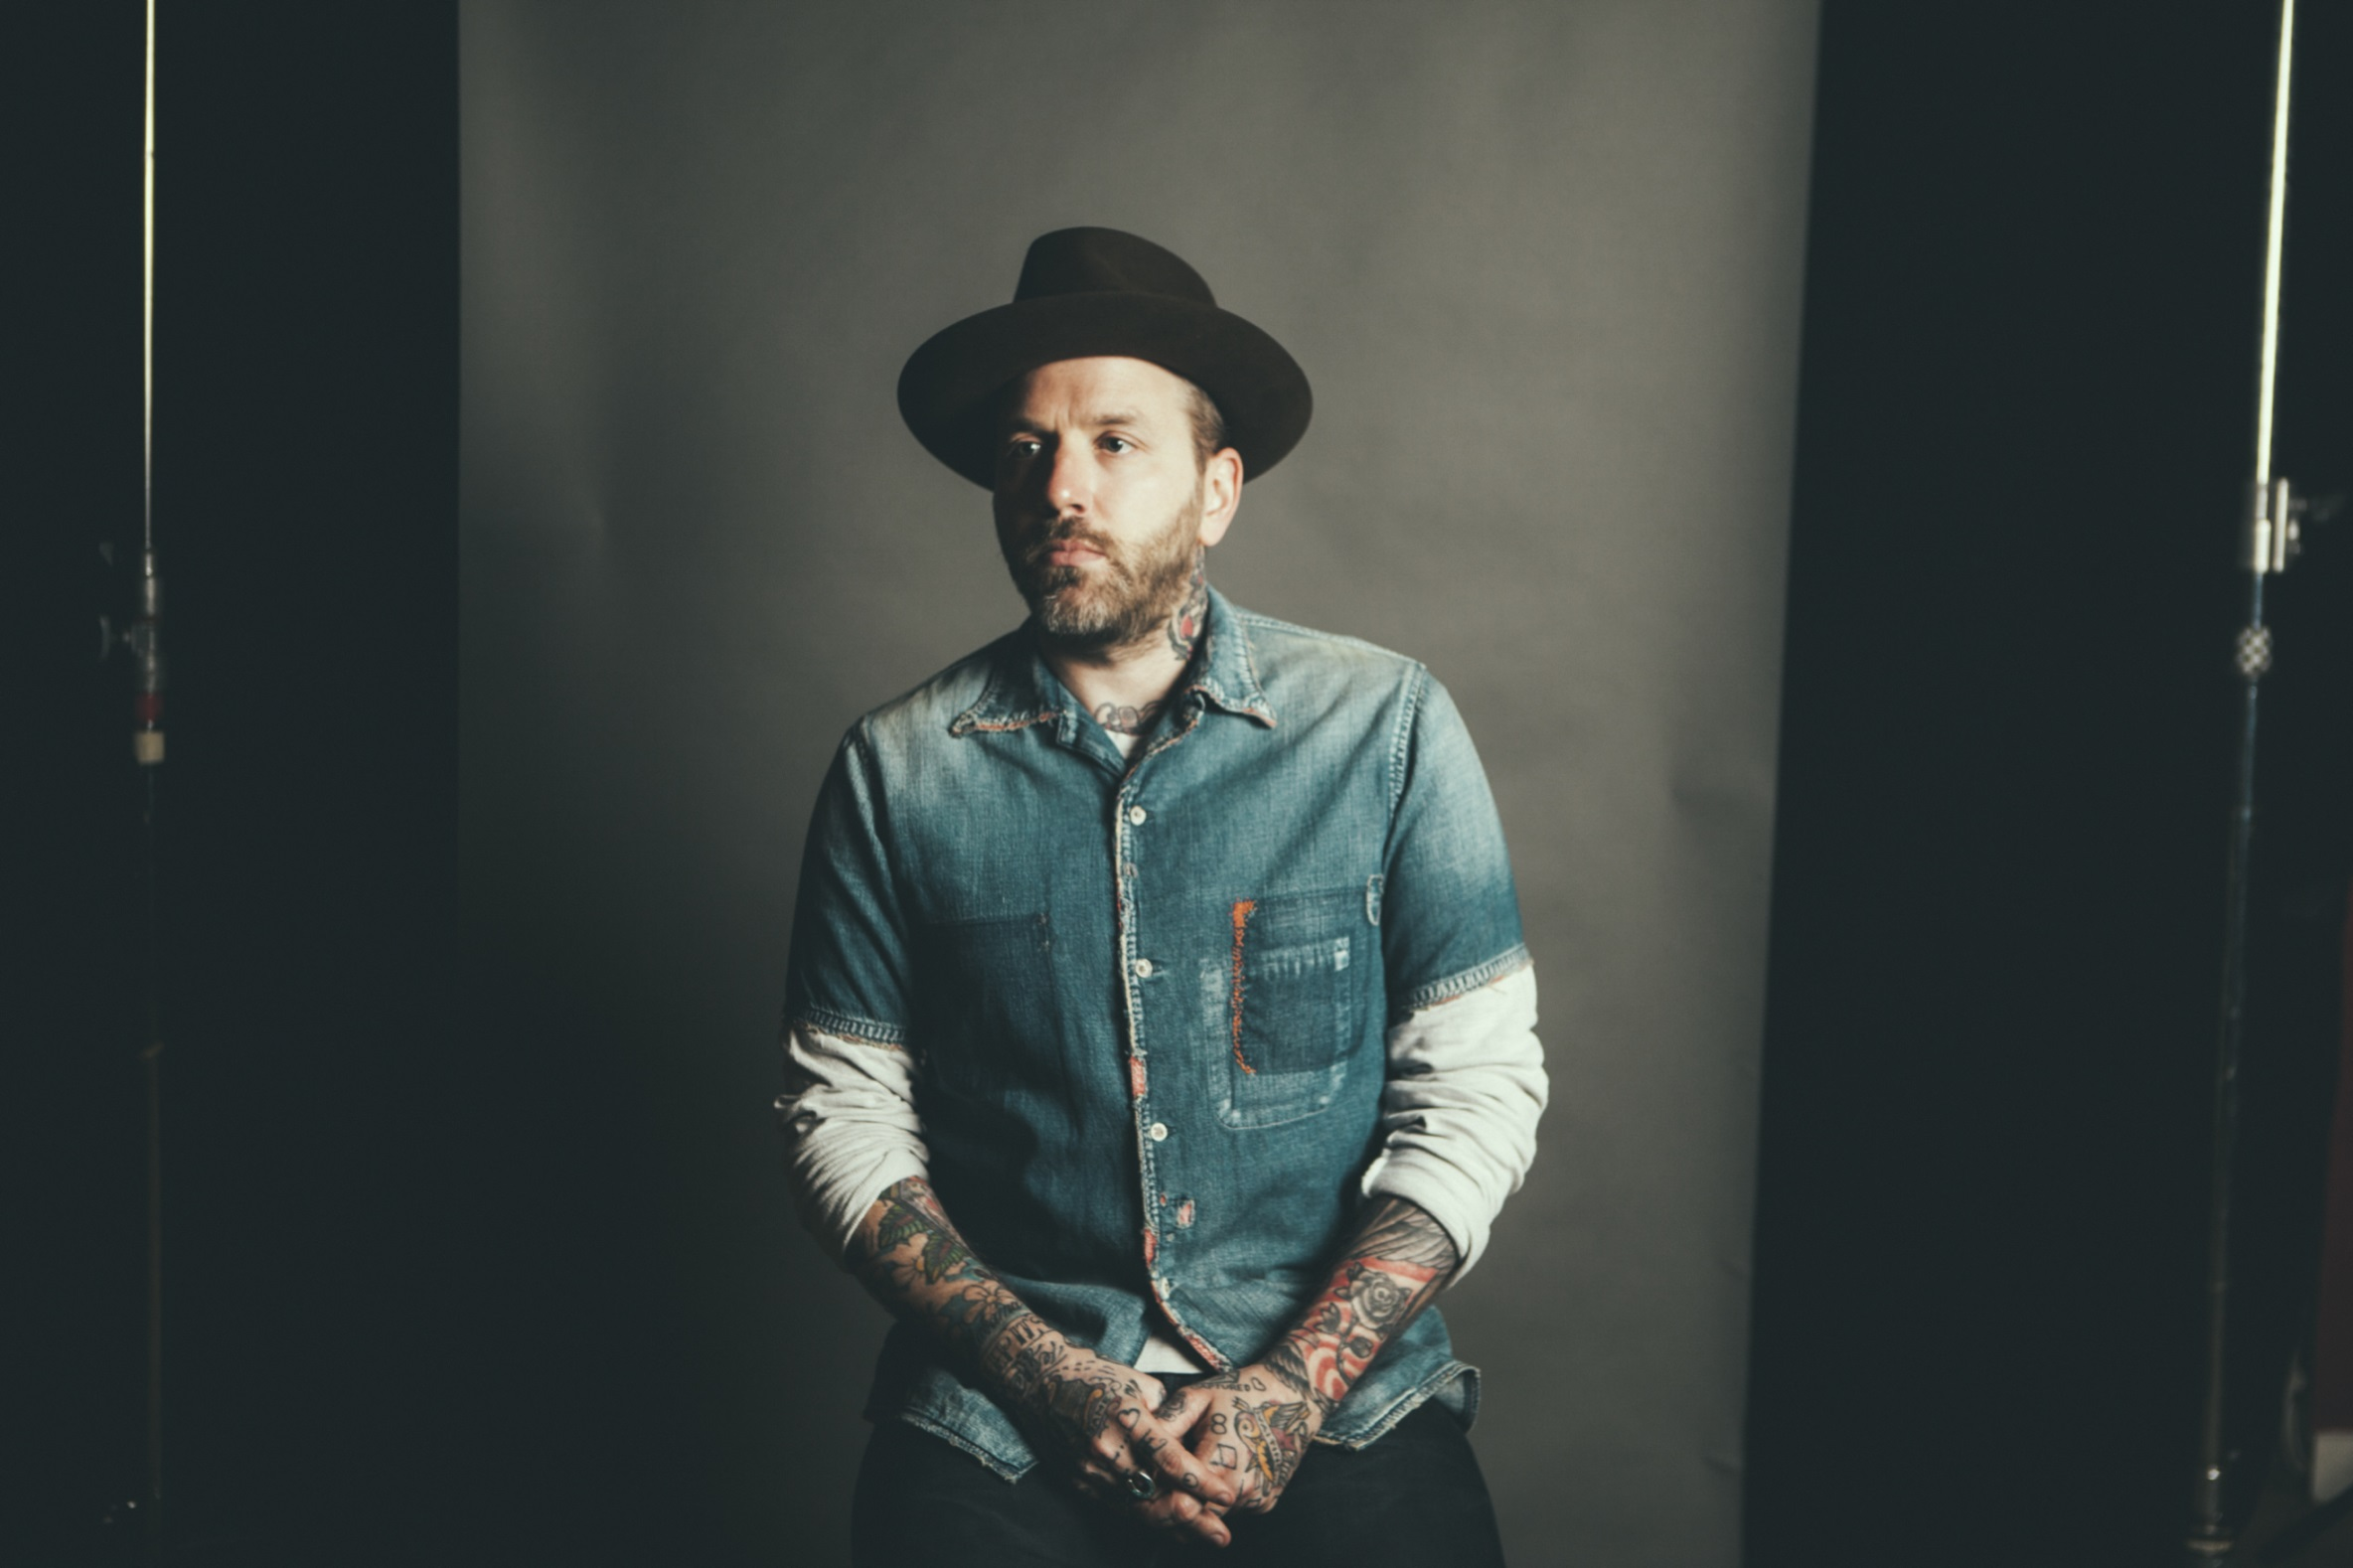 City & Colour Announces Rescheduled Australian Tour Dates